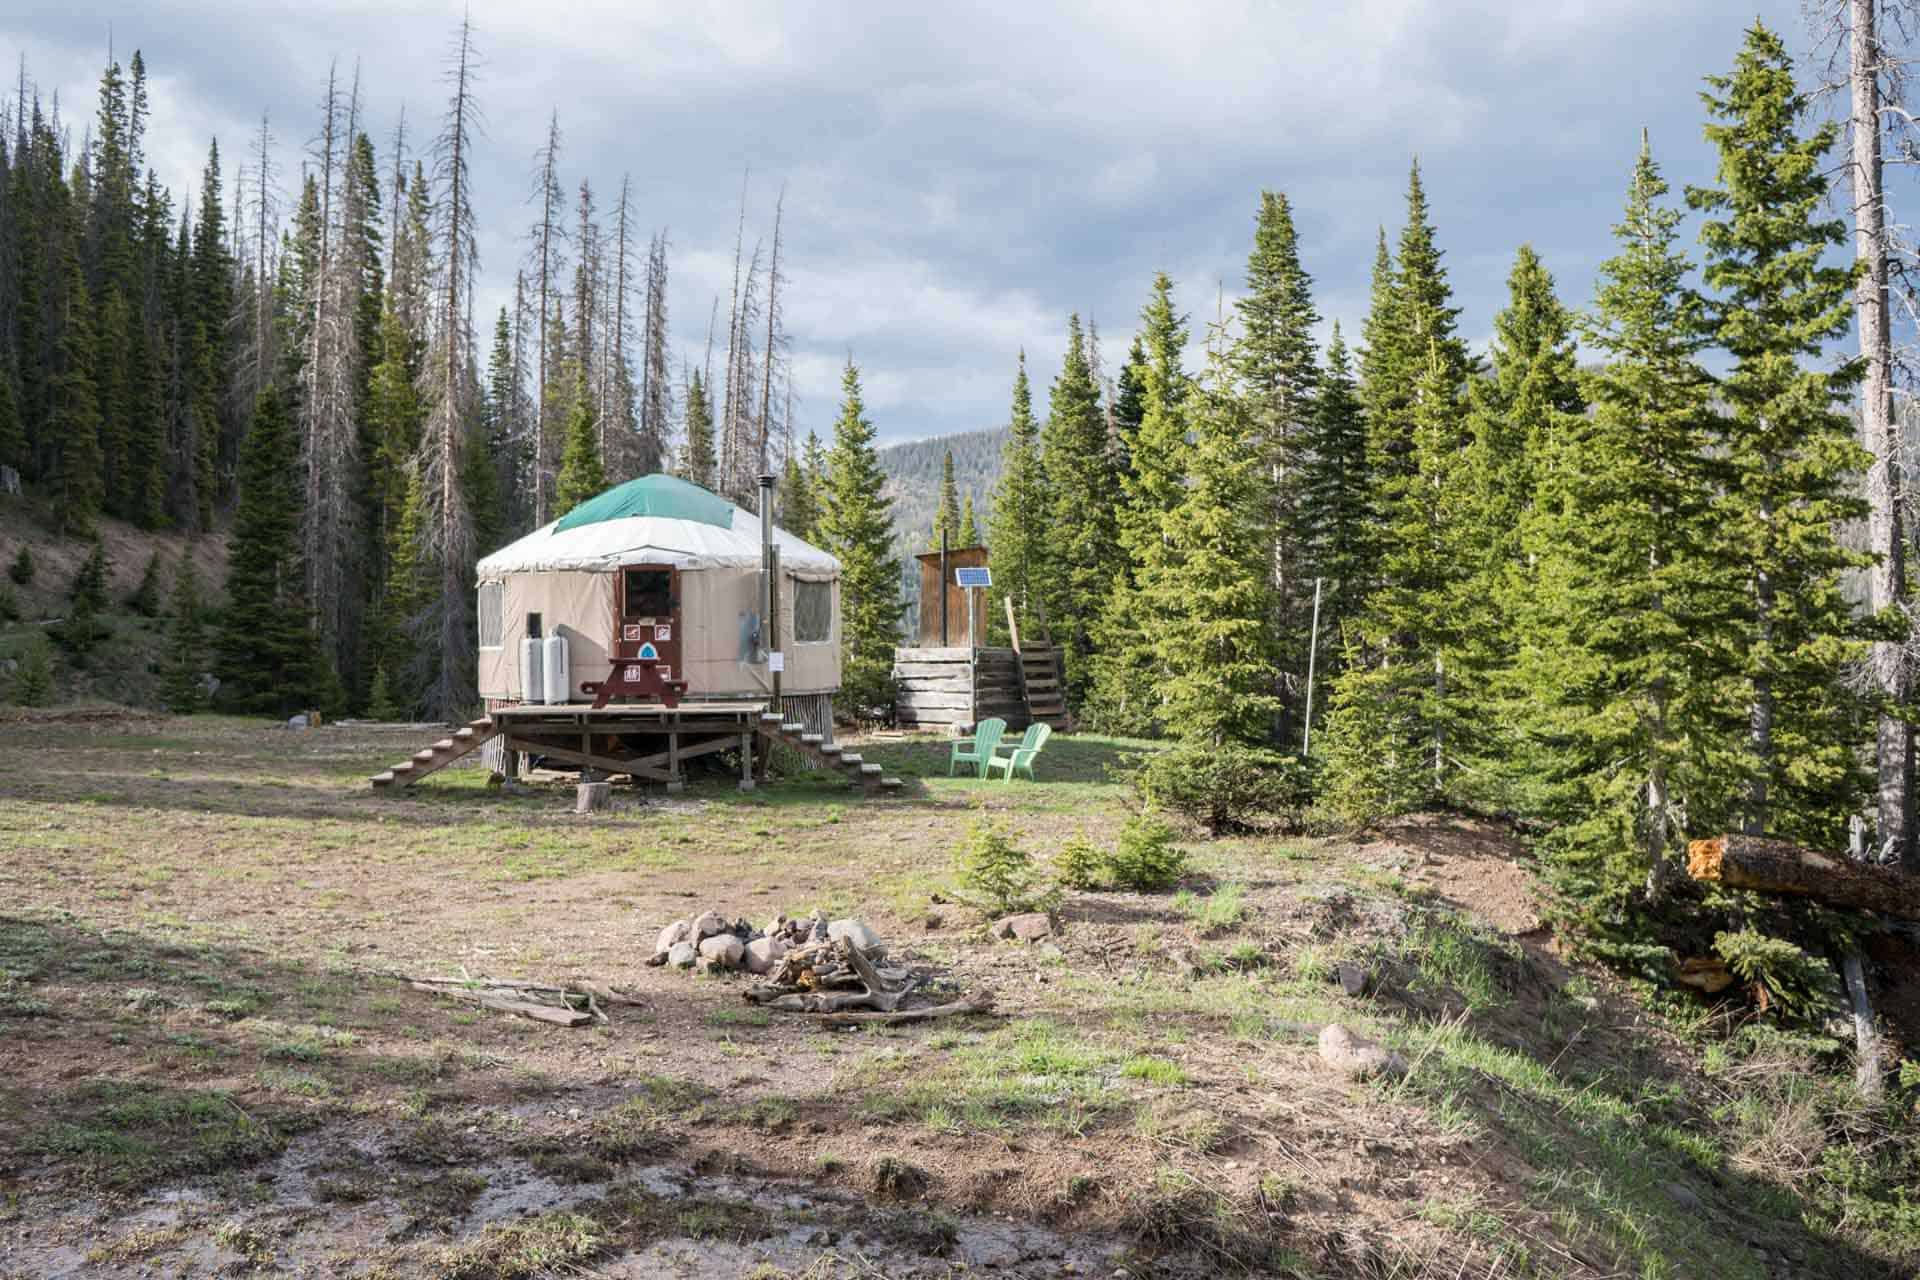 CDT Colorado San Juan Mountains Yurt 1